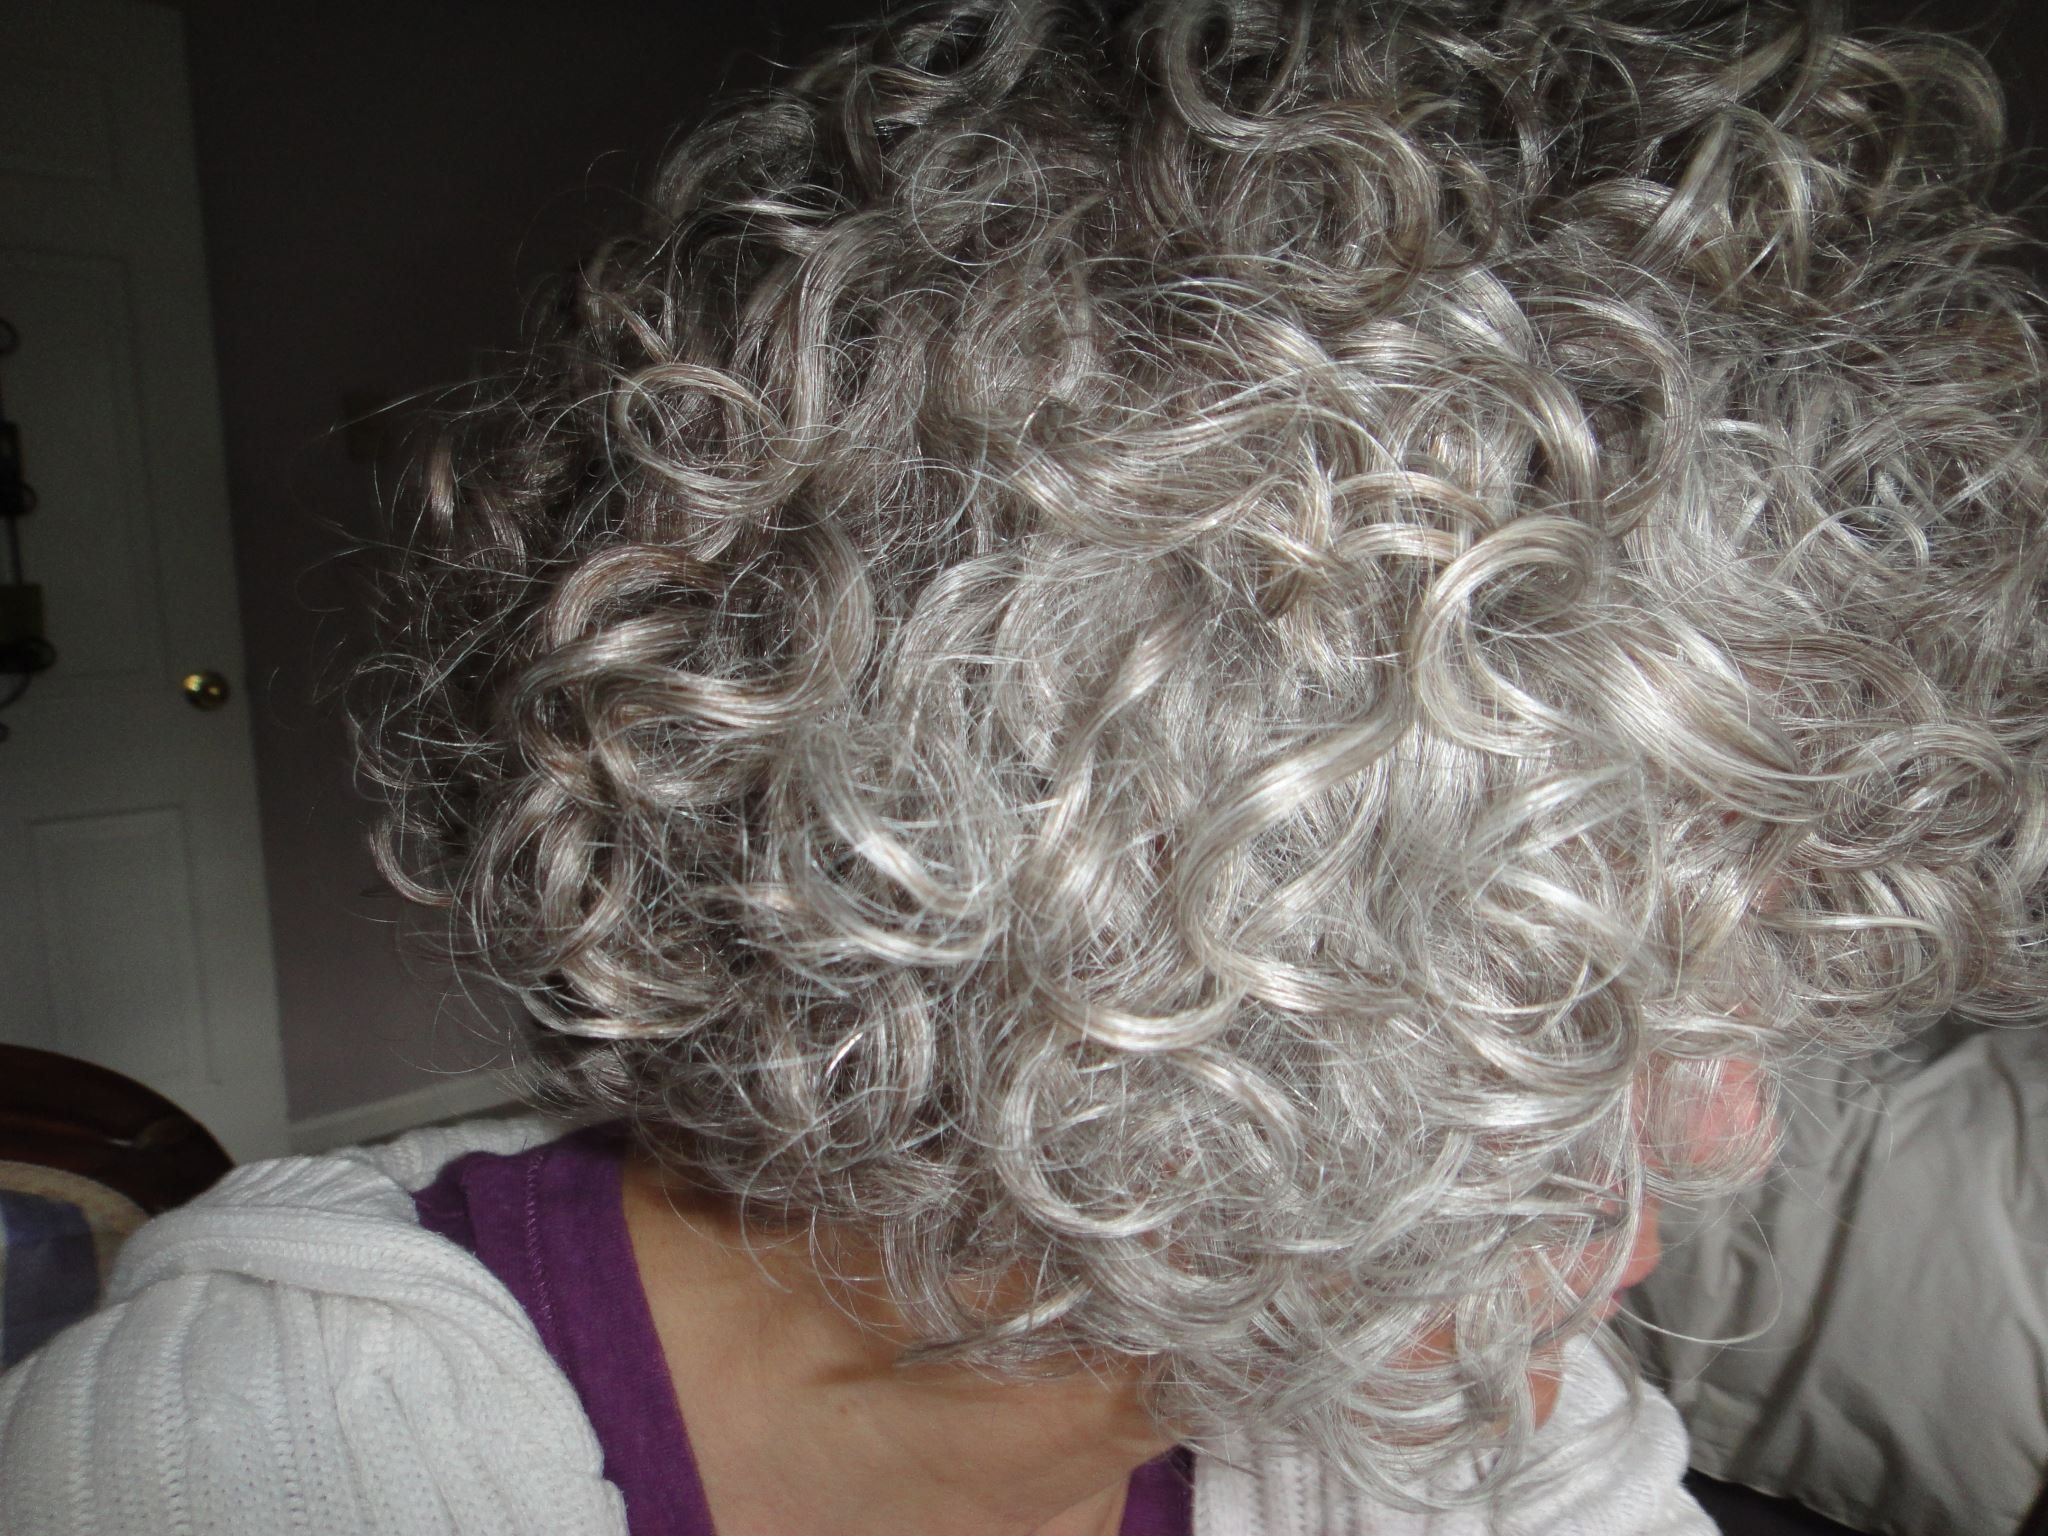 The only thing better than silver hair is curly silver hair style